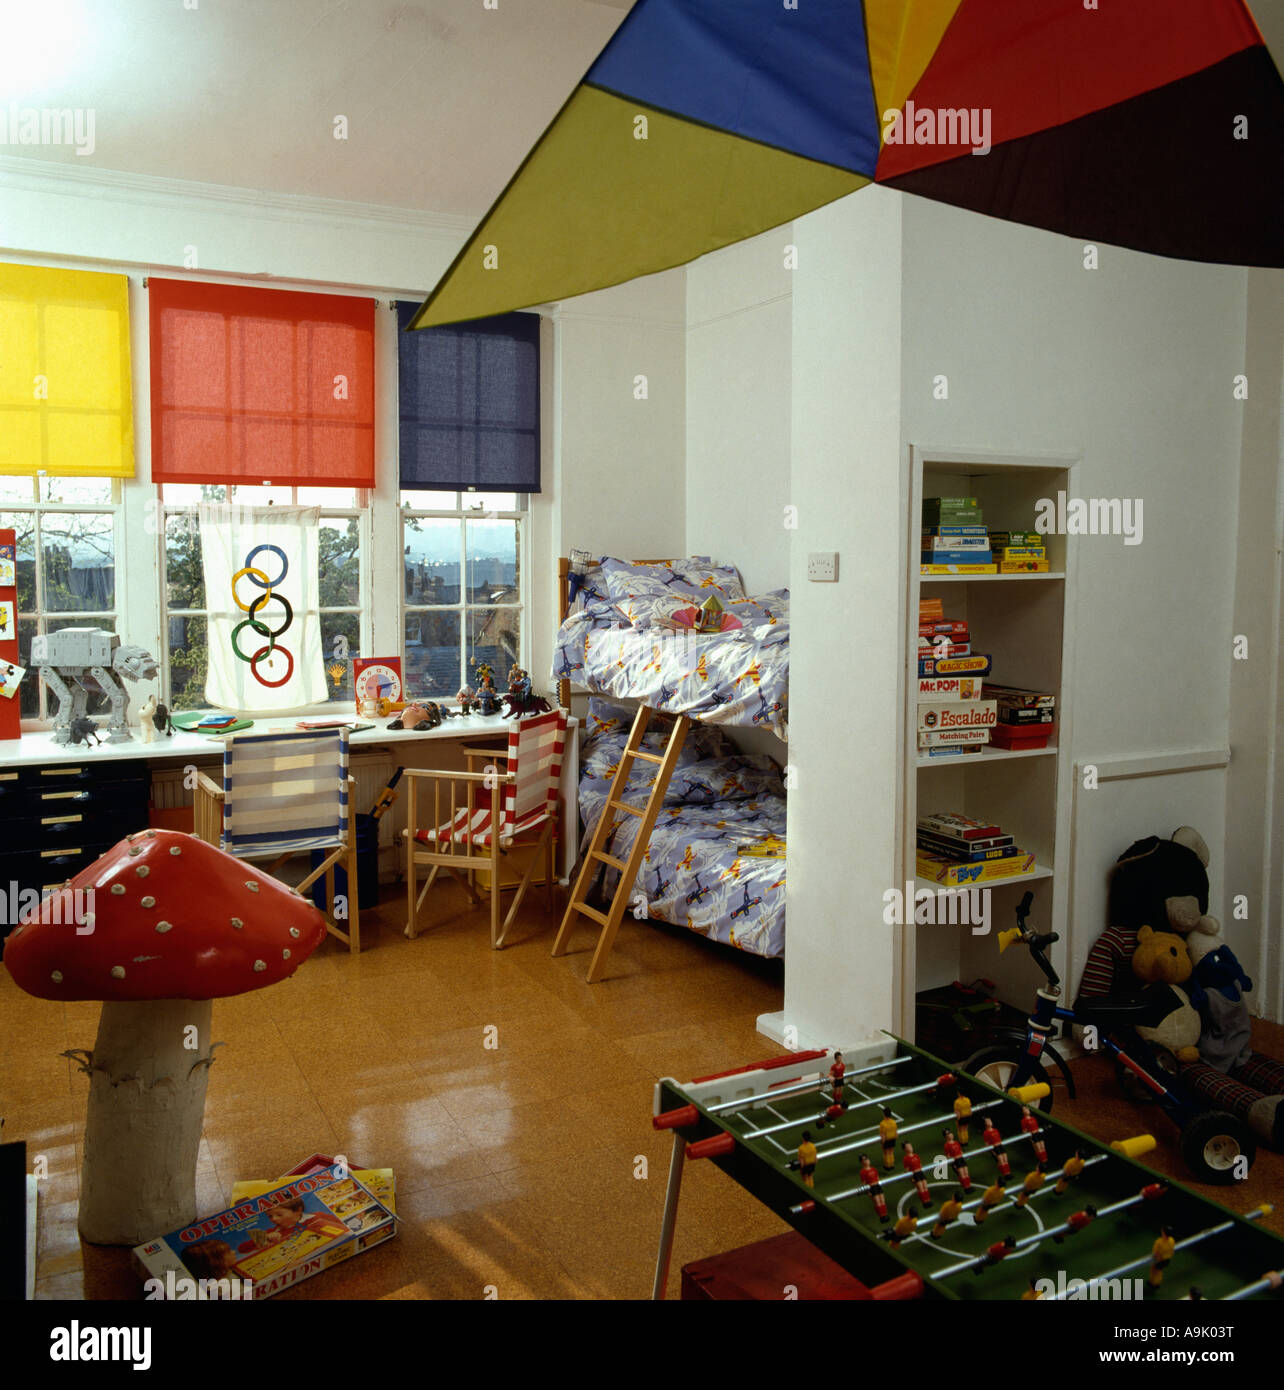 colourful blinds in eighties children's playroom with cork floor